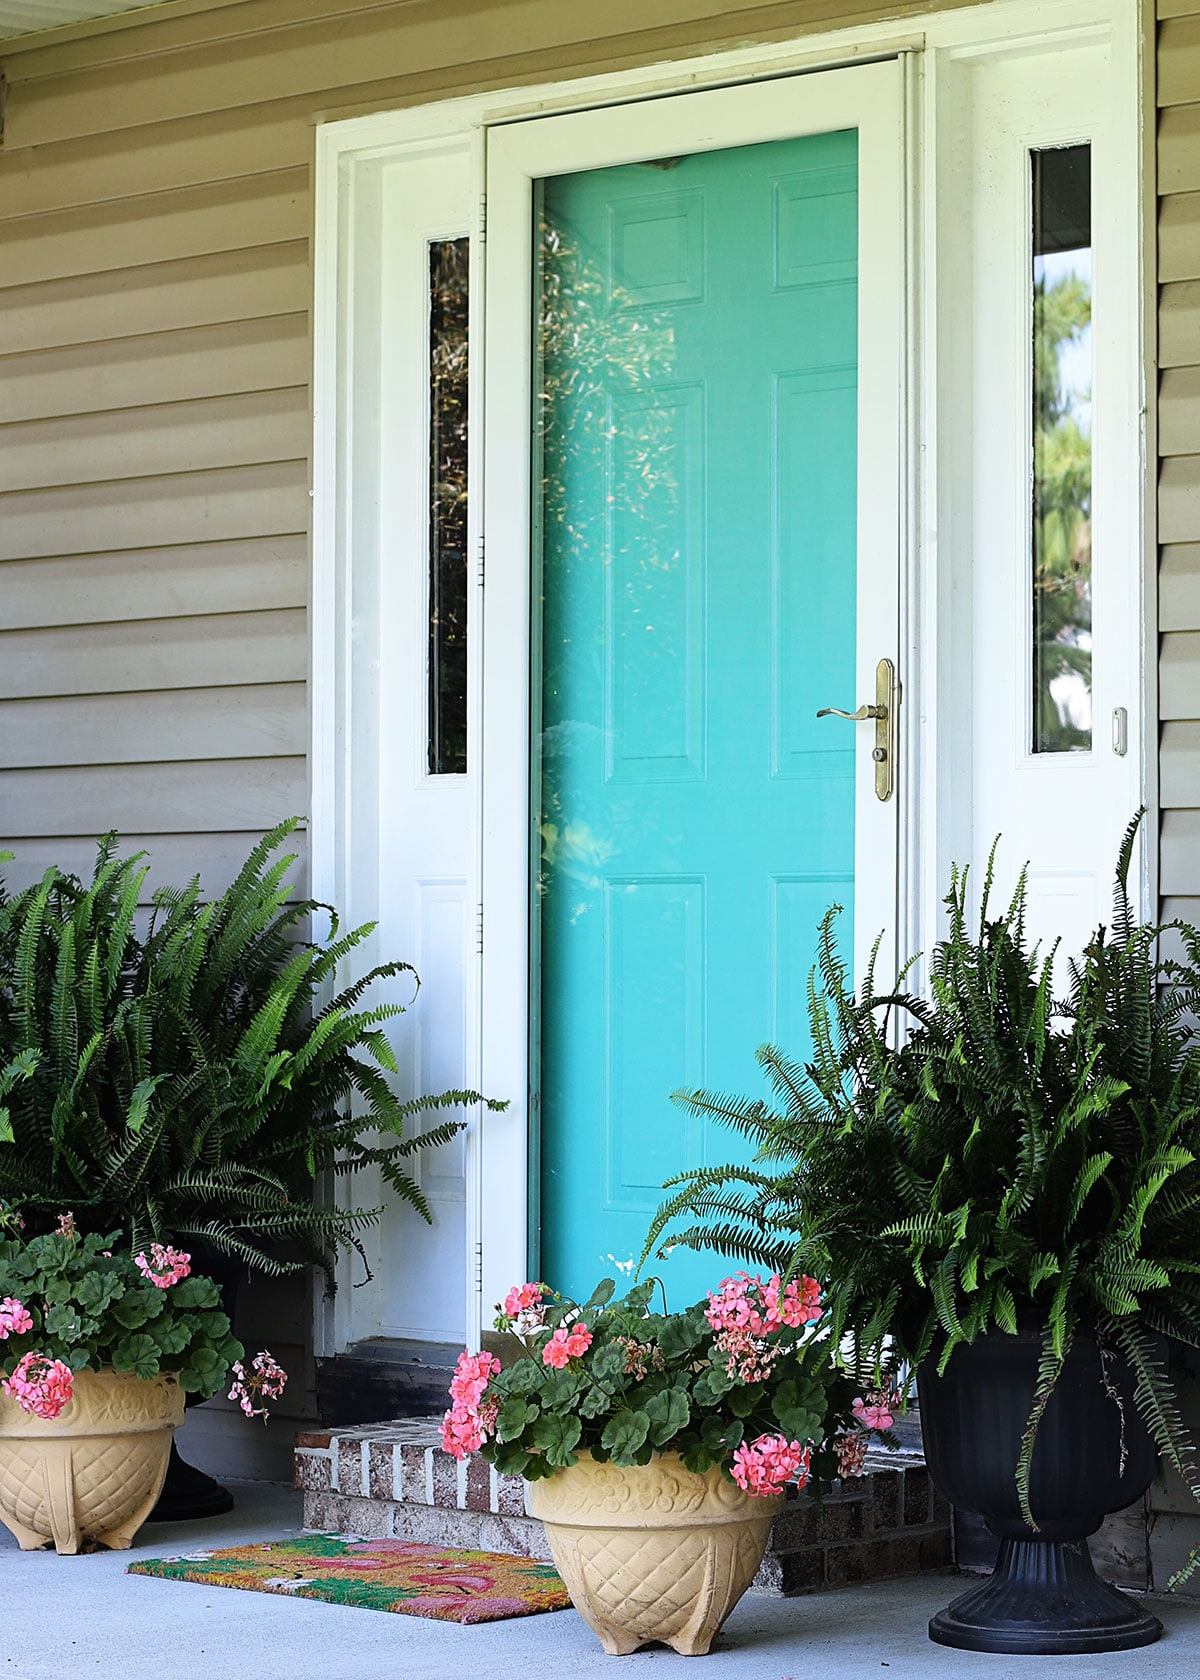 Front door painted turquoise with geraniums and ferns on the porch.